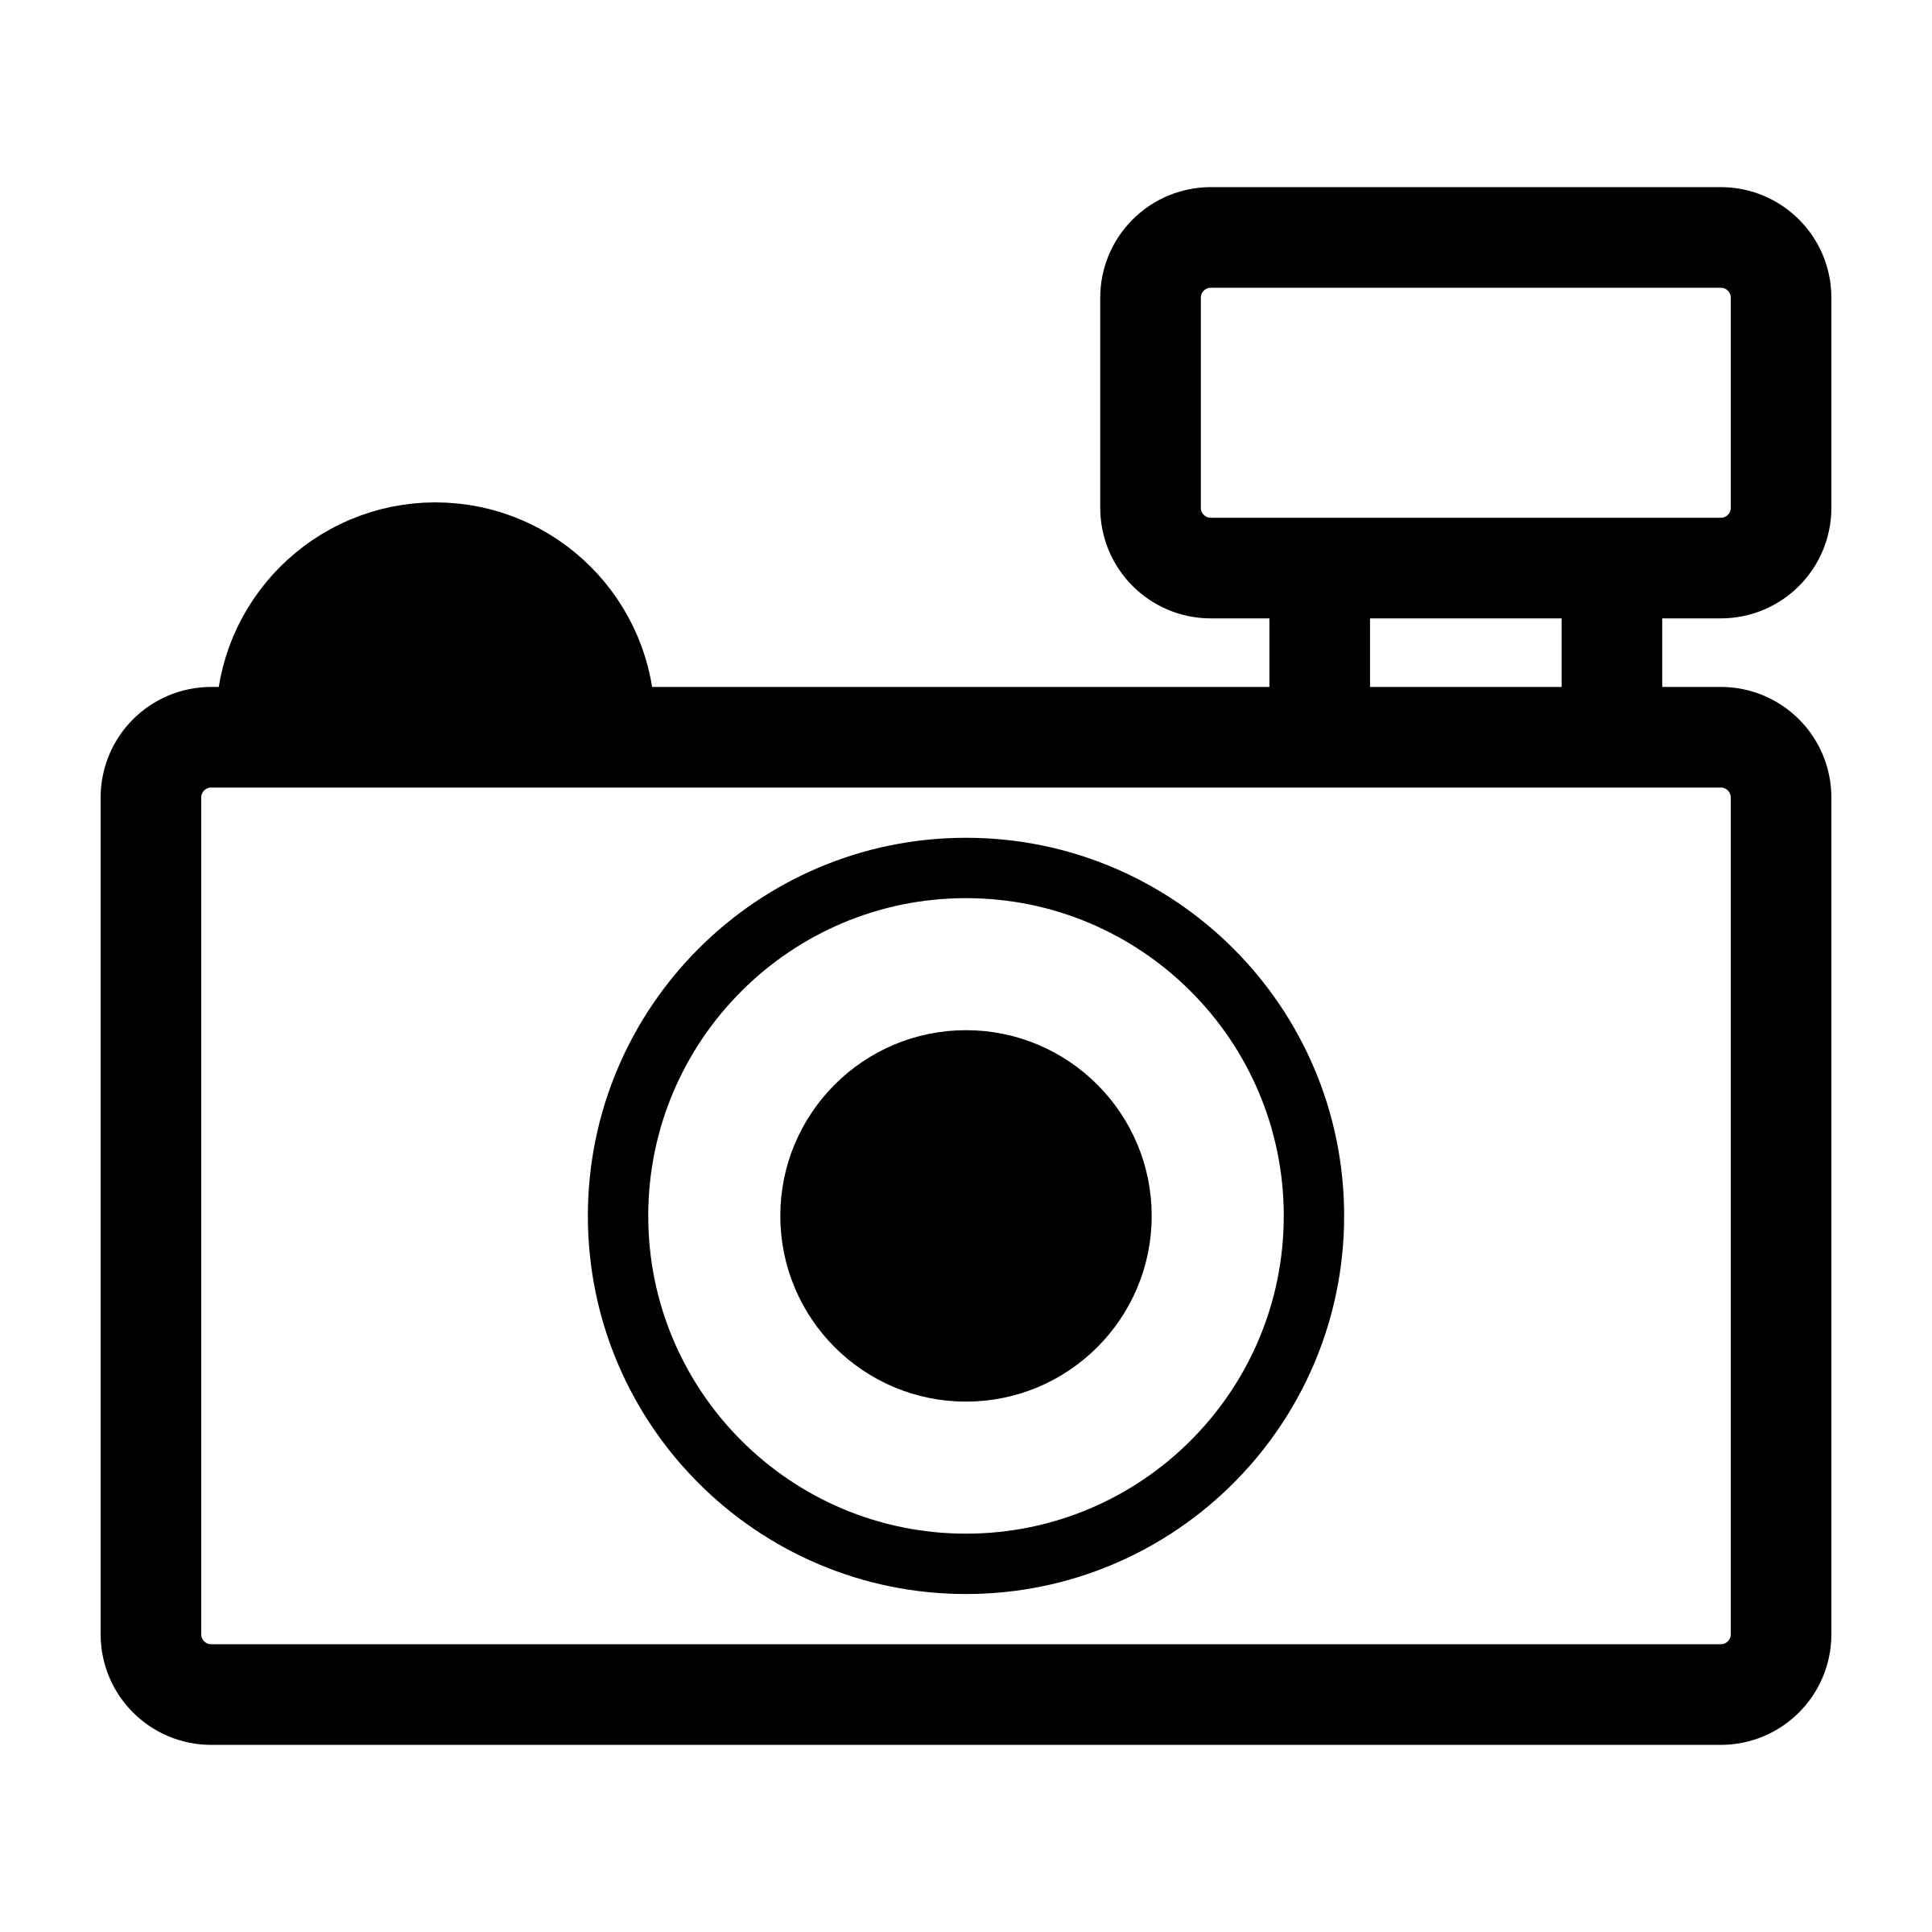 2400x2400 Camera Clip Art Black And White Free Clipart Images